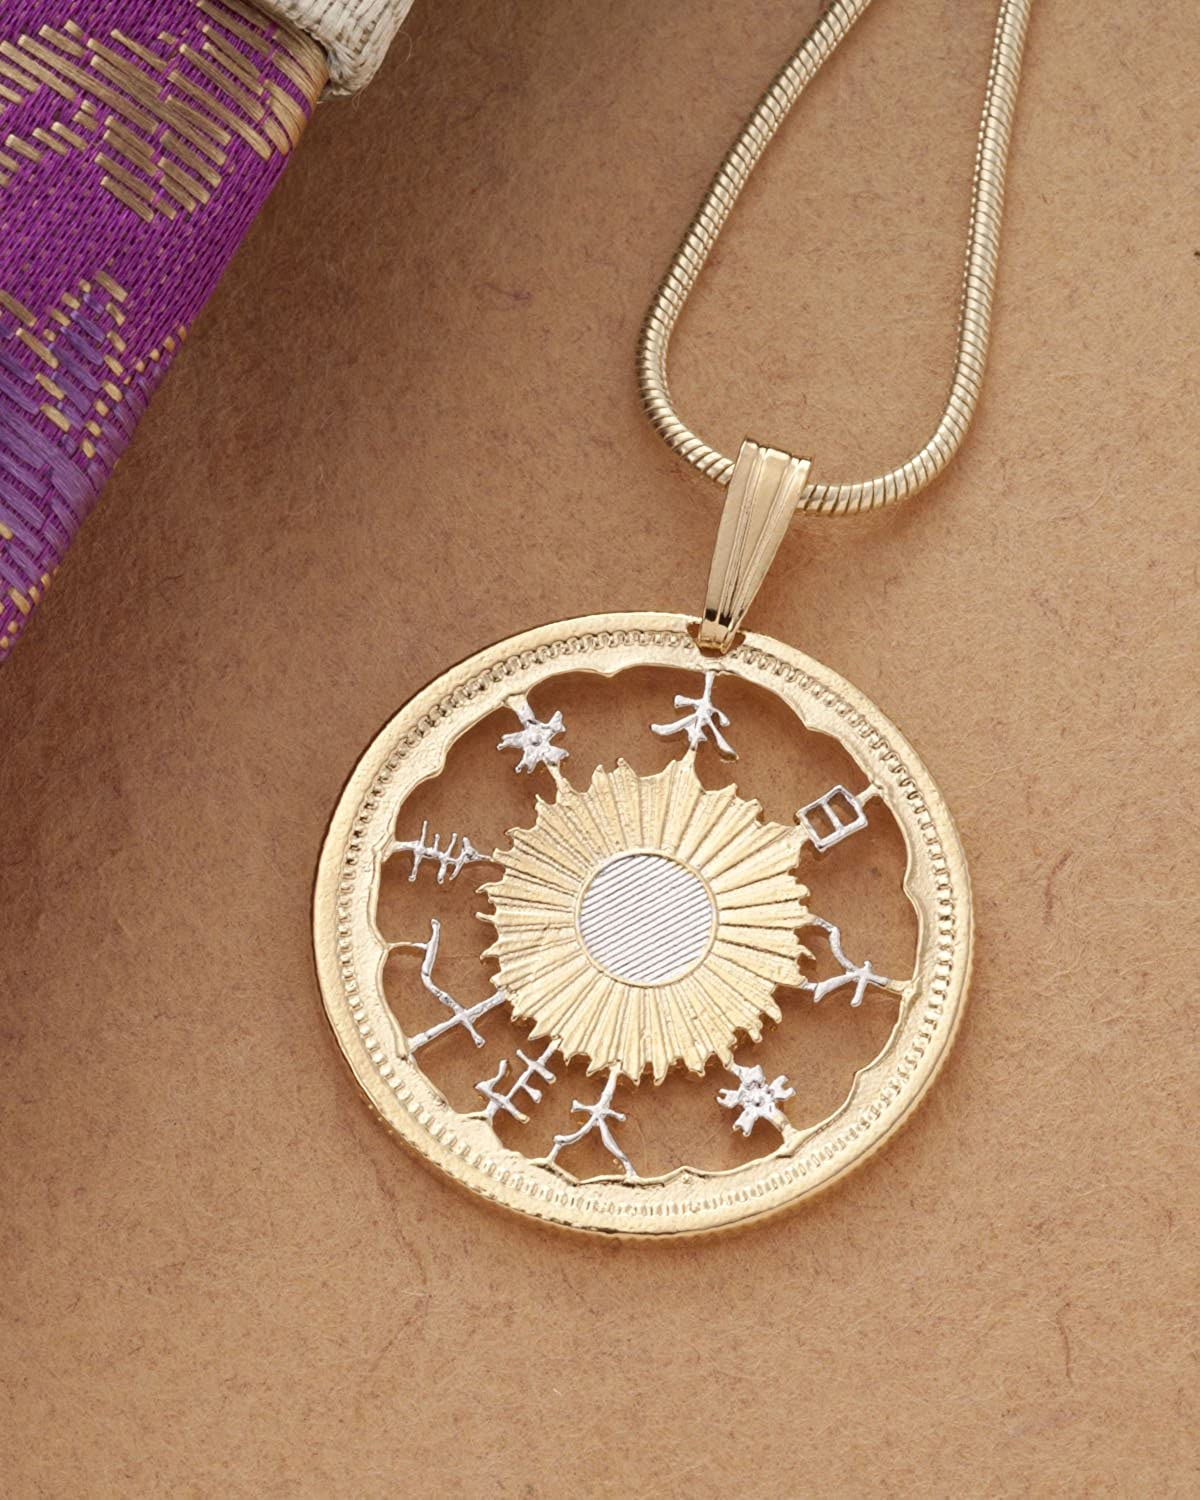 7//8 Dia. Japanese Coin Pendant and Necklace # 903 14K Gold/& Rhodium Plated Hand Cut Japanese Coin